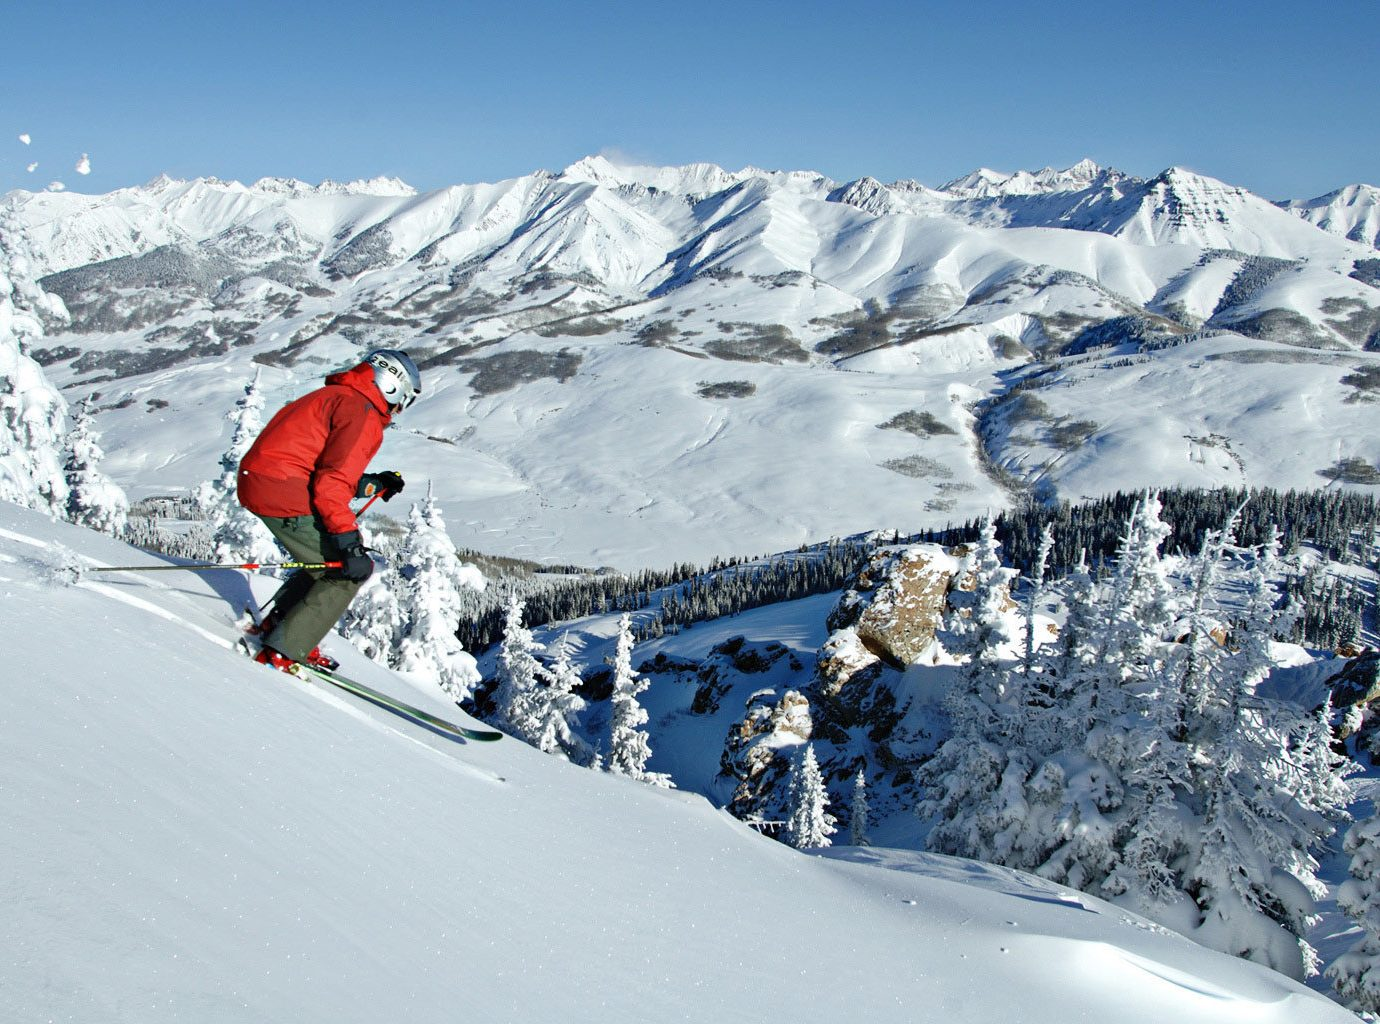 Adventure Mountains Outdoor Activities Outdoors Scenic views Ski Sport snow sky Nature ice skiing piste telemark skiing geological phenomenon mountain range Winter footwear ski equipment winter sport ski mountaineering ski touring sports mountain downhill snowboard Resort extreme sport nordic skiing alpine skiing sports equipment alps ski cross ski slope slope